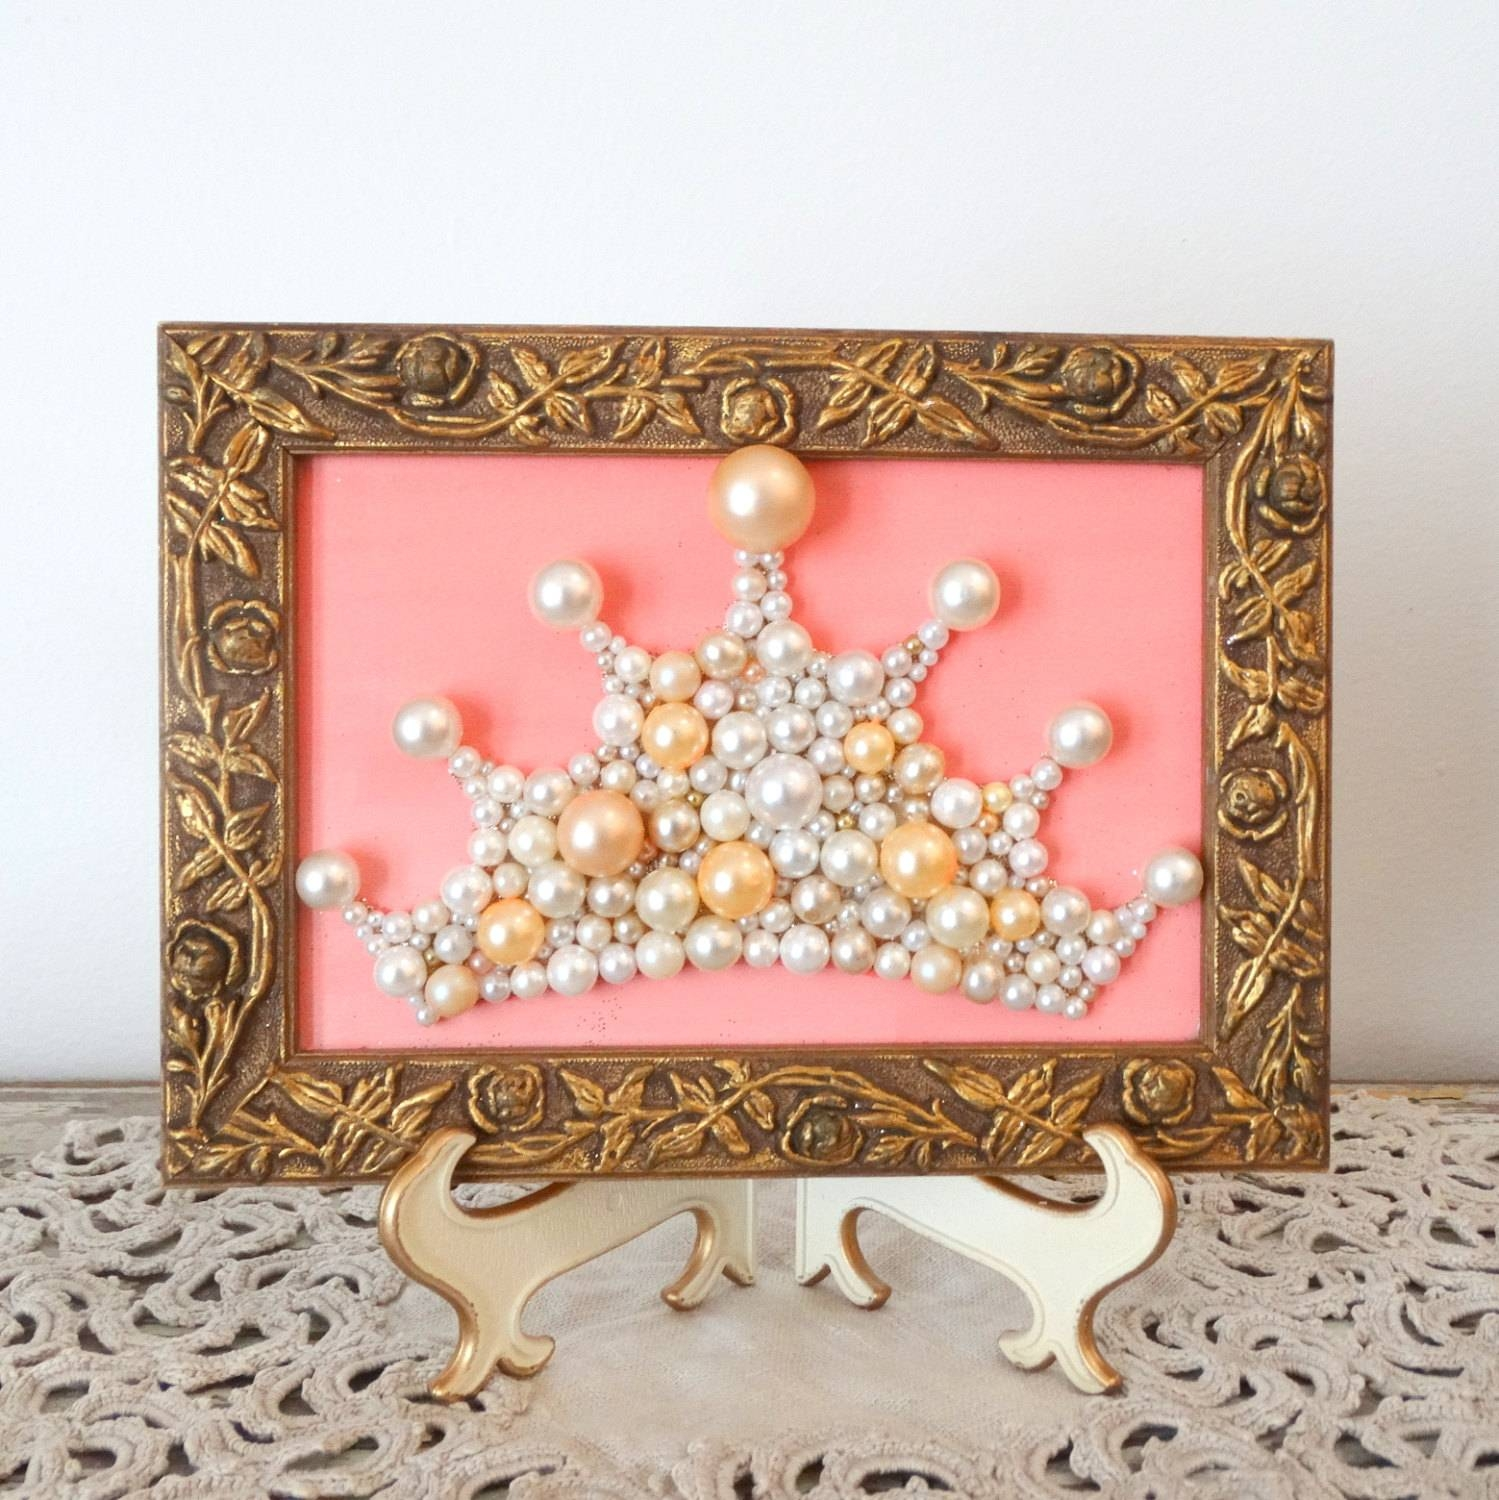 Impressive Princess Crown Wall Art Free Shipping Princess Crown Throughout Latest Princess Crown Wall Art (Gallery 7 of 25)